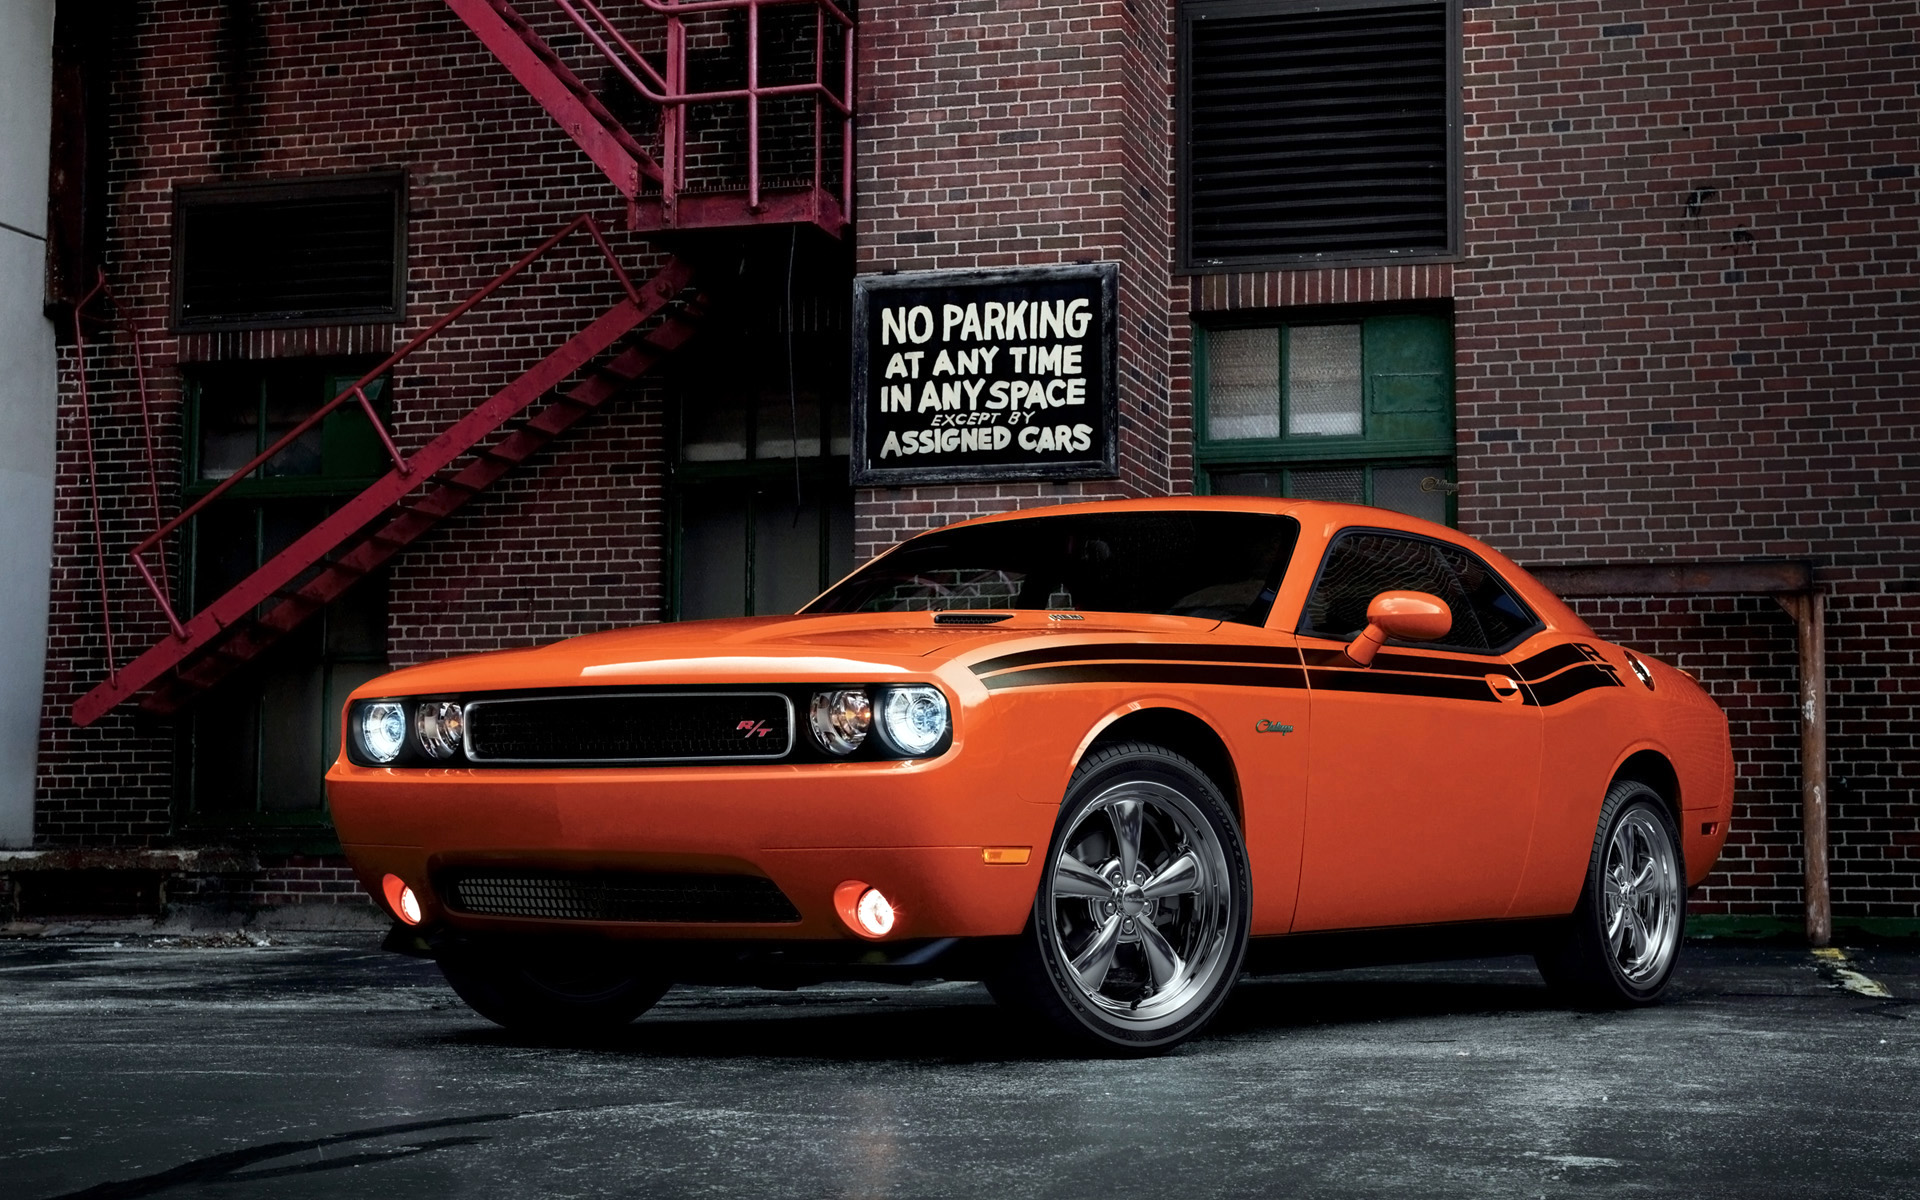 2014 Dodge Challenger RT Classic Wallpapers HD Wallpapers 1920x1200